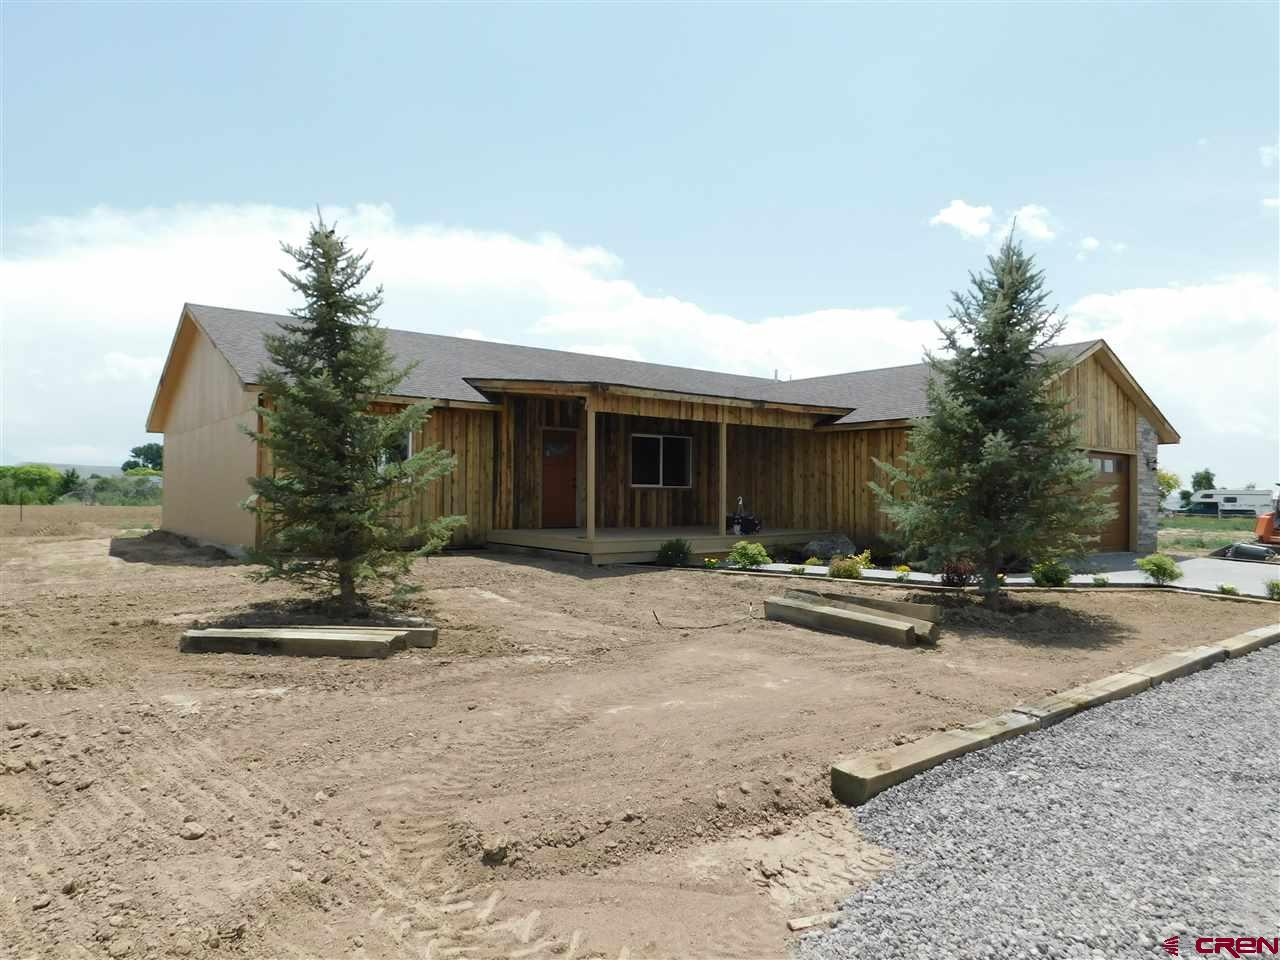 Brand new home on 7.47 acres with Grand Mesa views. Three bedroom, 2 full bathrooms, ranch style home with open floor plan. Large covered back patio to enjoy the views. $5,000 landscaping allowance credited to buyer at closing. Gorgeous kitchen with all appliances included. Vaulted ceiling. Large laundry room also includes your new washer and dryer. This land provides many opportunities for any buyer to enjoy. 8 Shares of Orchard City Irrigation District water. Horses allowed. Good location for Delta or Cedaredge schools.